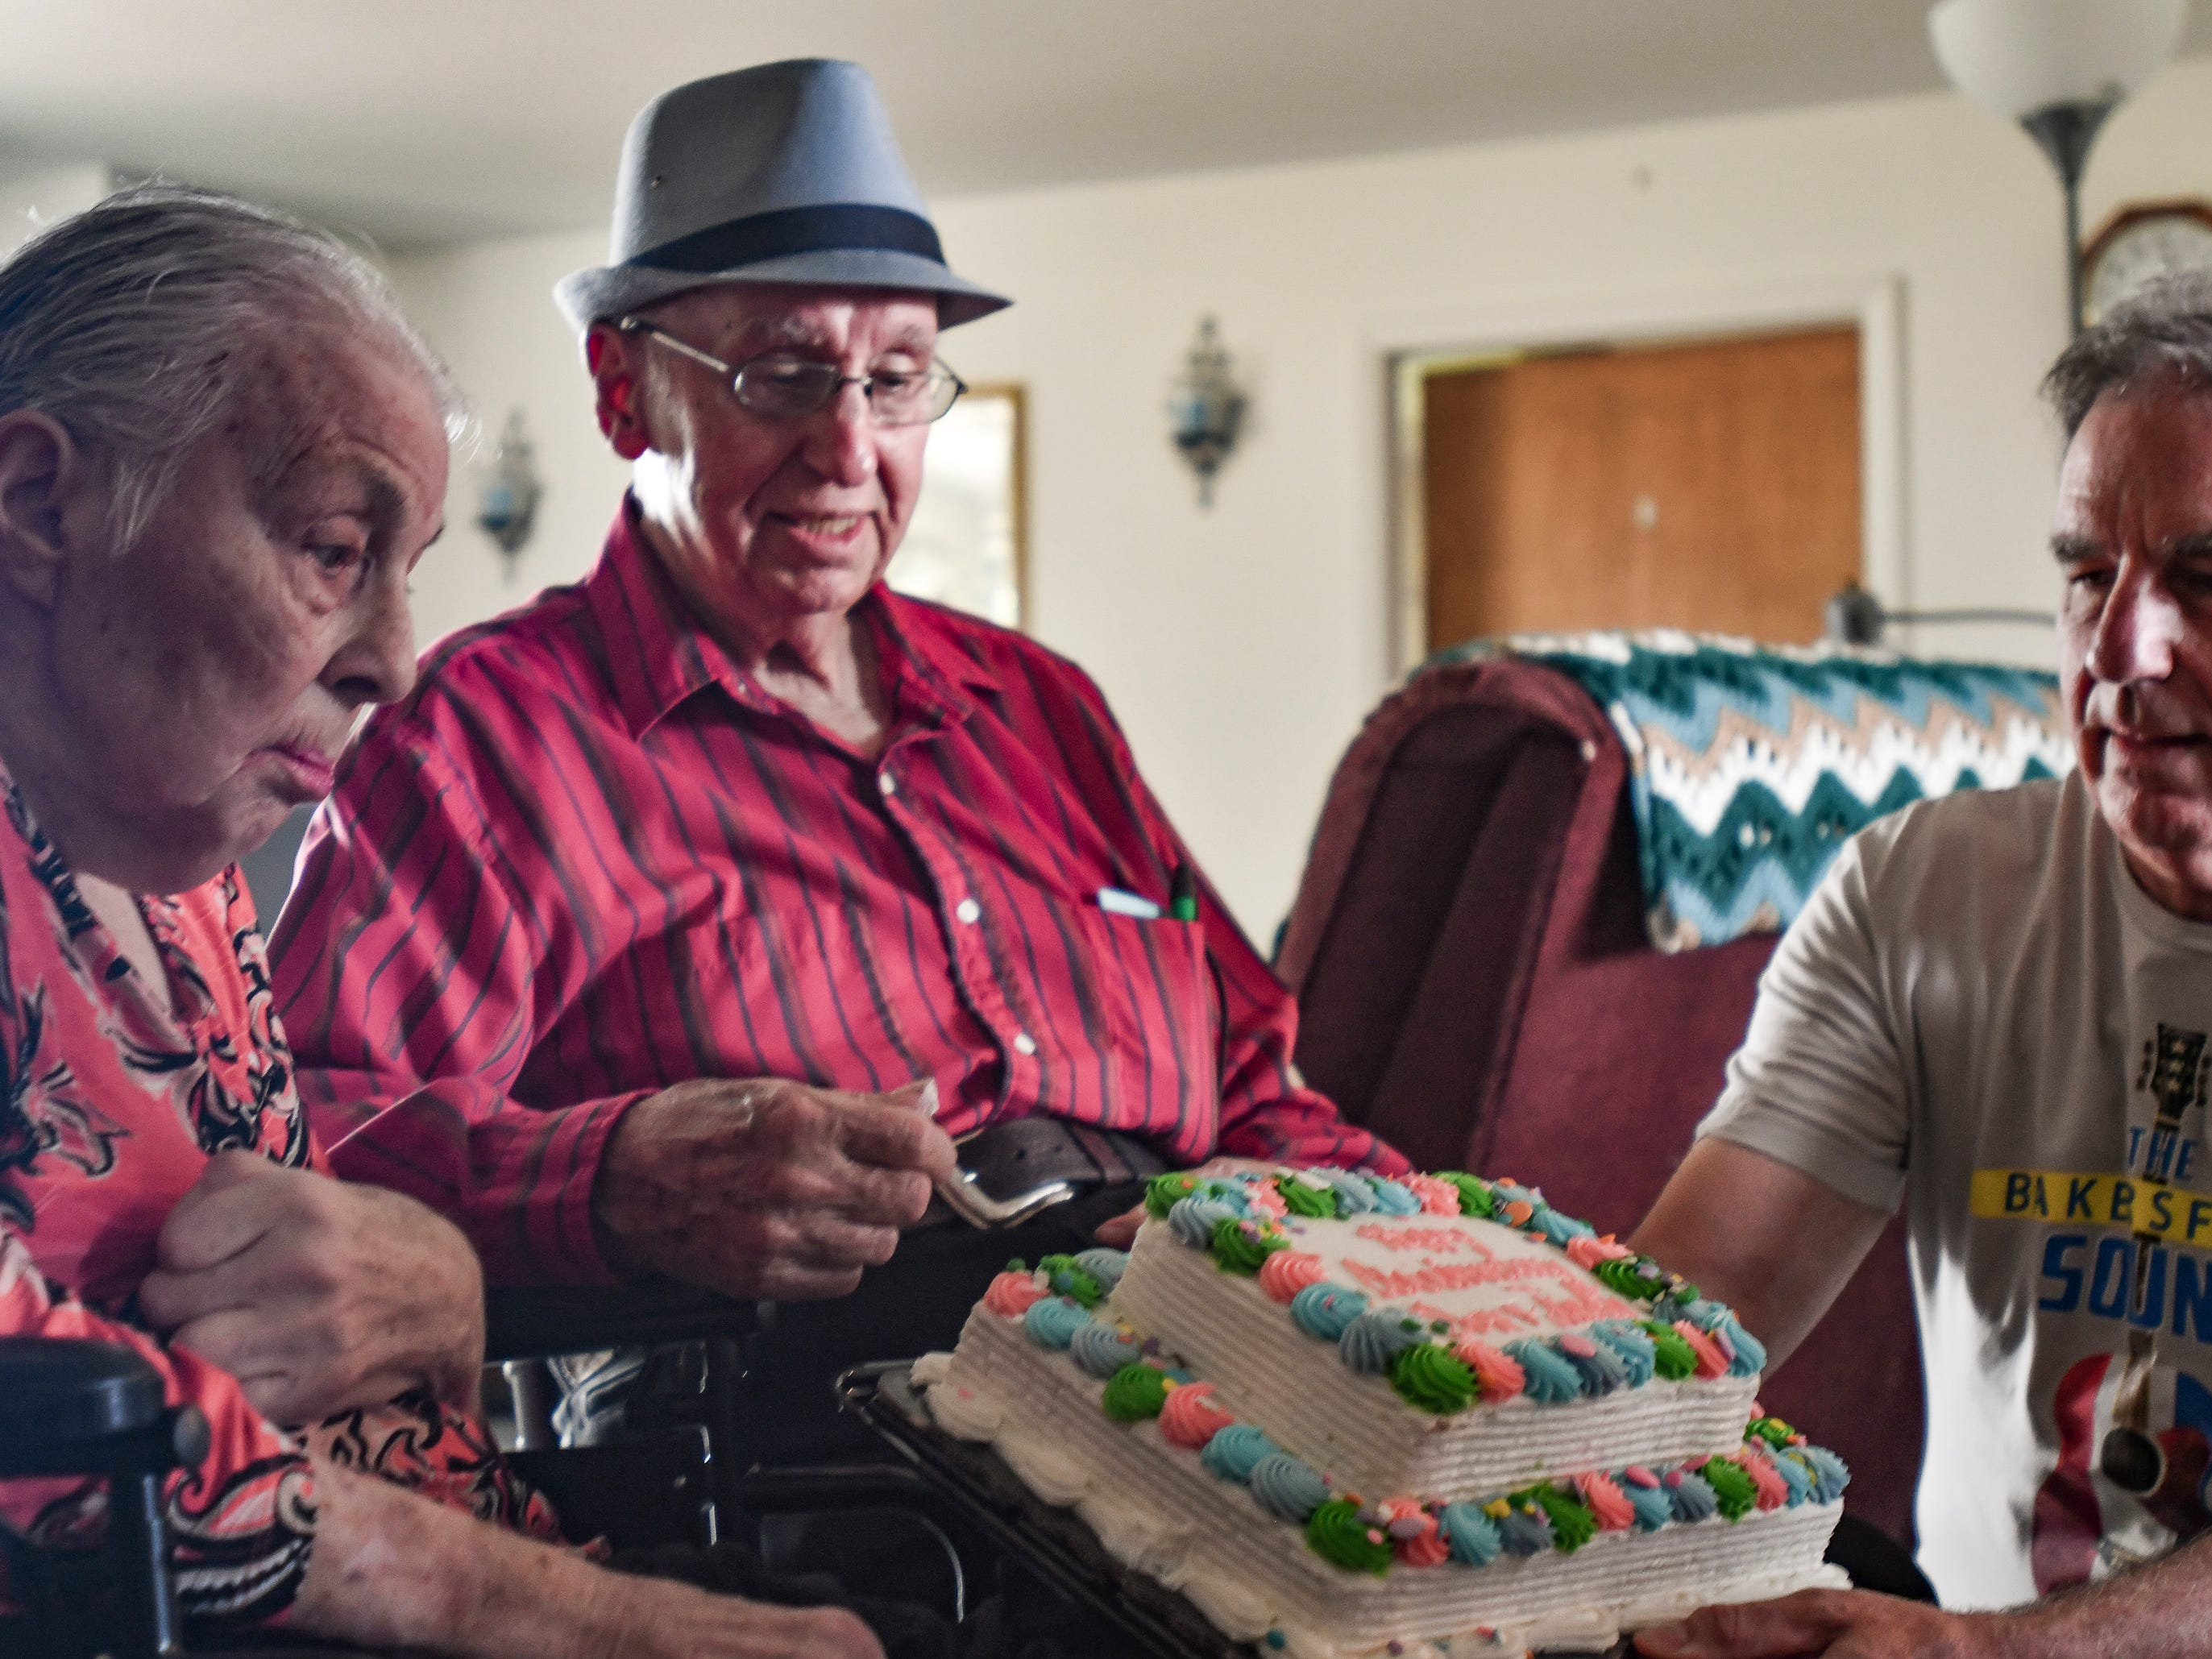 Kerry West, right, of Los Angeles, presents an anniversary cake to his parents Jackie and Don West, Tuesday, Aug. 21, 2018, during their 64th wedding anniversary party in Charlotte.